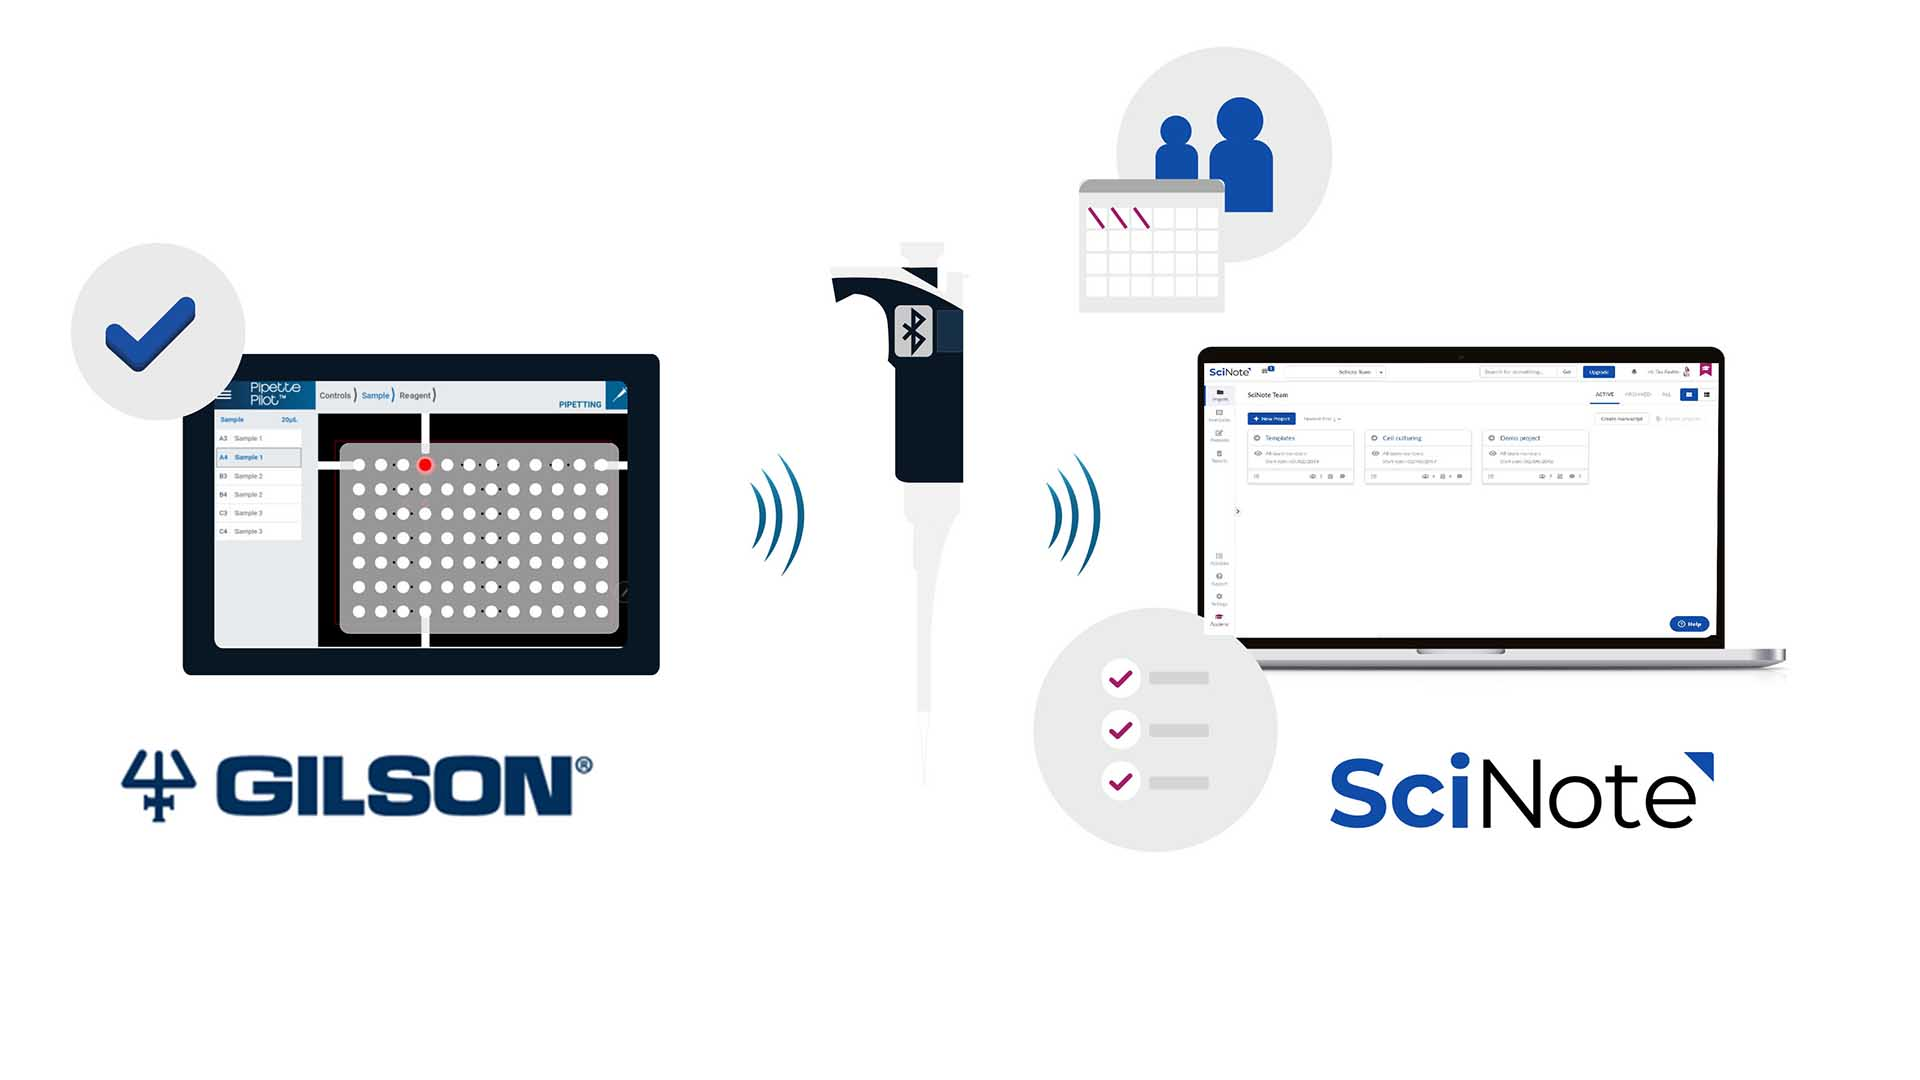 Gilson and SciNote - digitalization and interoperability